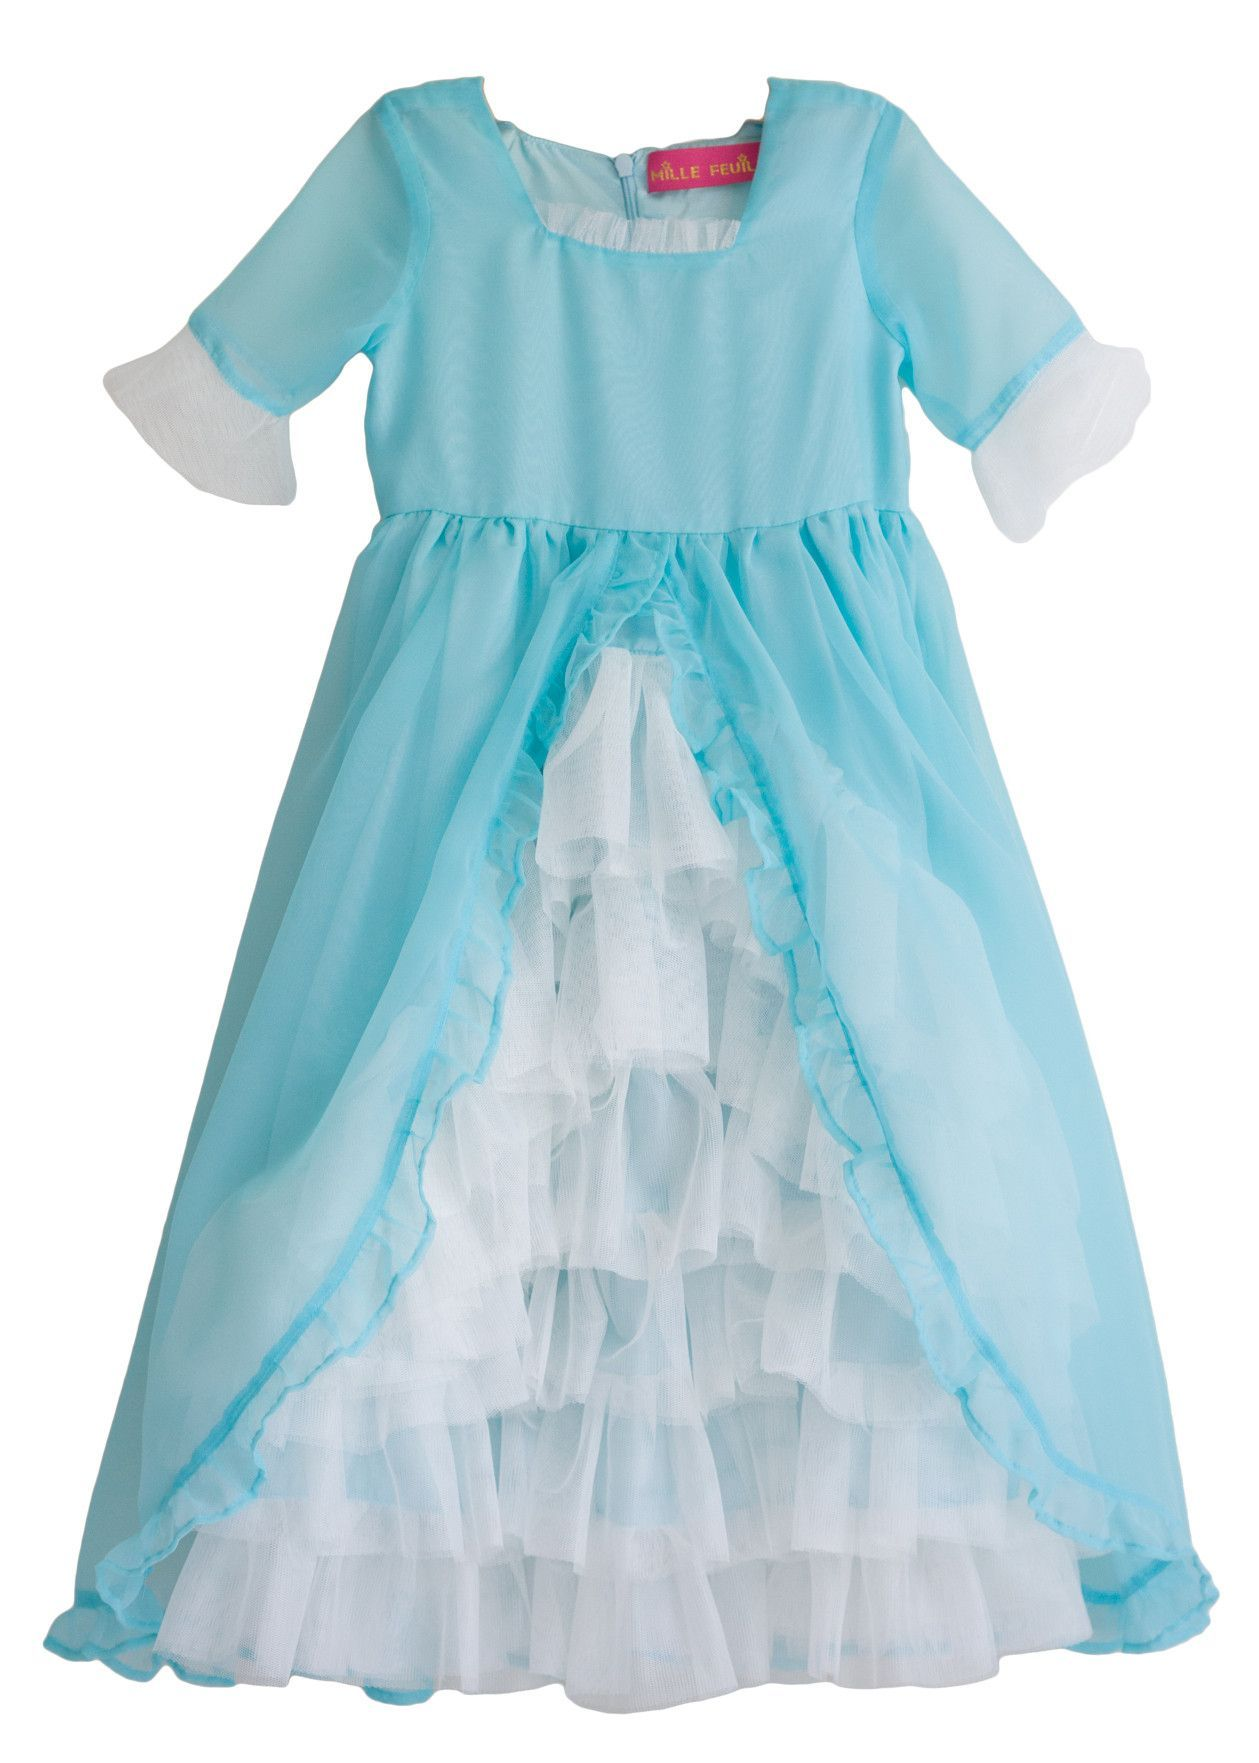 Madame Royale Vintage Style Flower Girl Dress Tiffany Blue